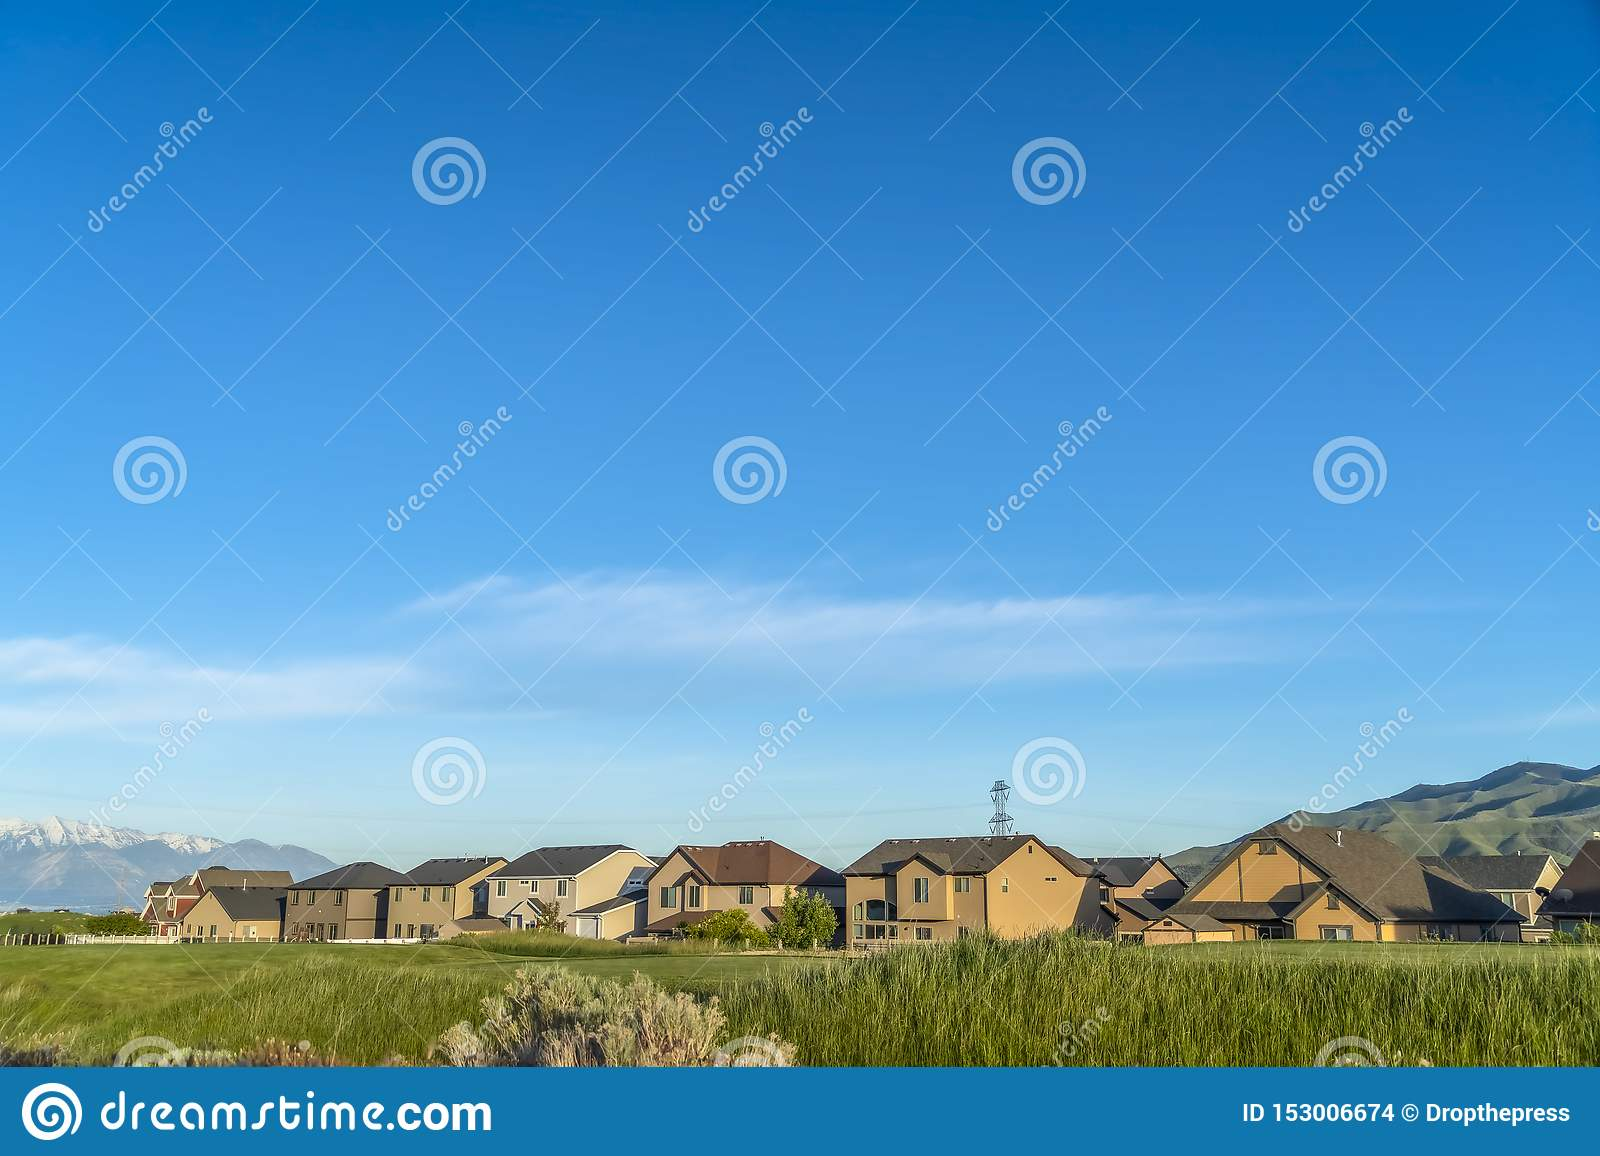 Scenic view of neighborhood in the valley with mountain and blue sky background